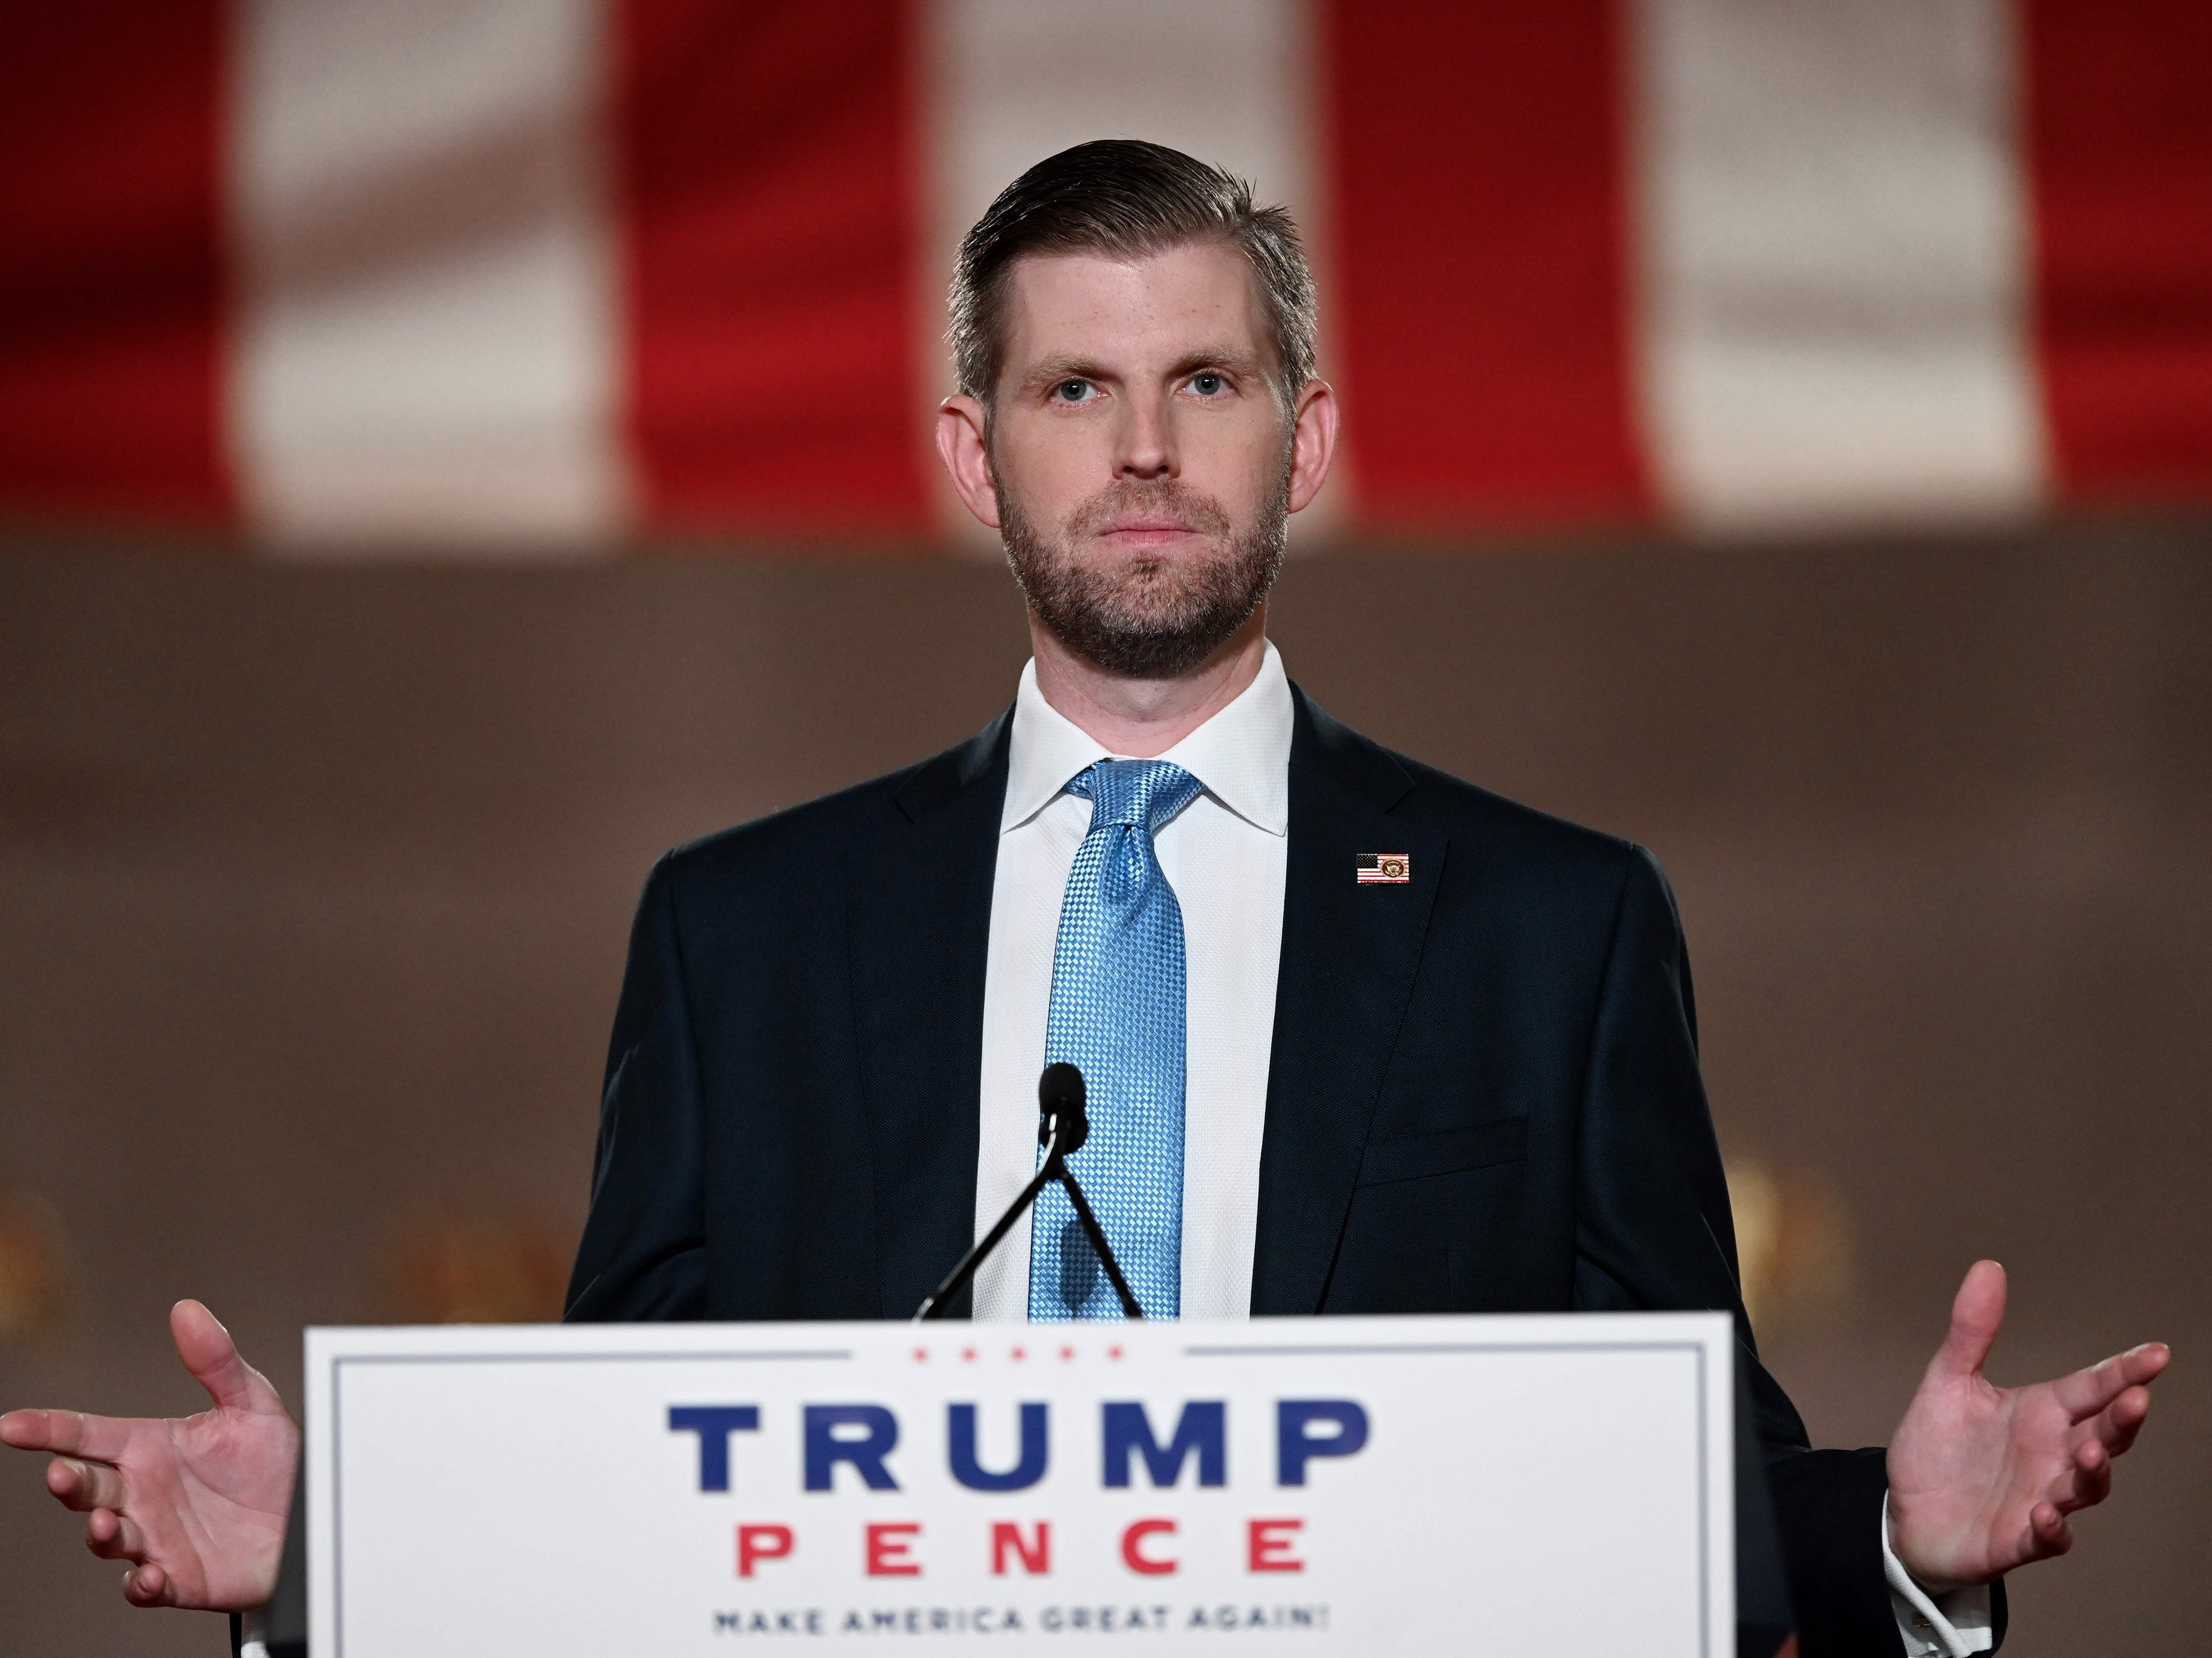 Eric Trump tried to discredit the election result yet again and it backfired spectacularly